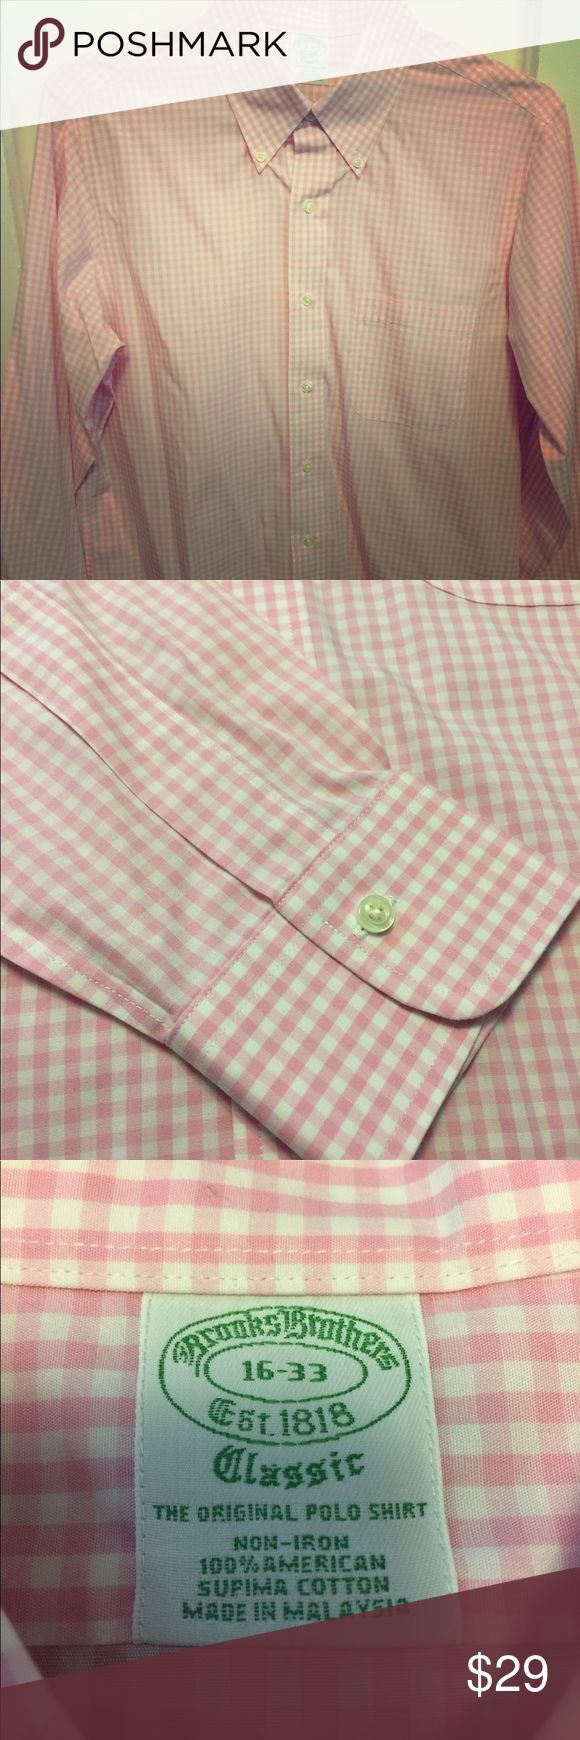 Brooks Brothers Milano Fit Non-Iron Dress Shirt Brooks Brothers Milano (extra slim) Fit Non-Iron Dress Shirt 16-33 100% supima cotton, Great condition! Brooks Brothers Shirts Dress Shirts